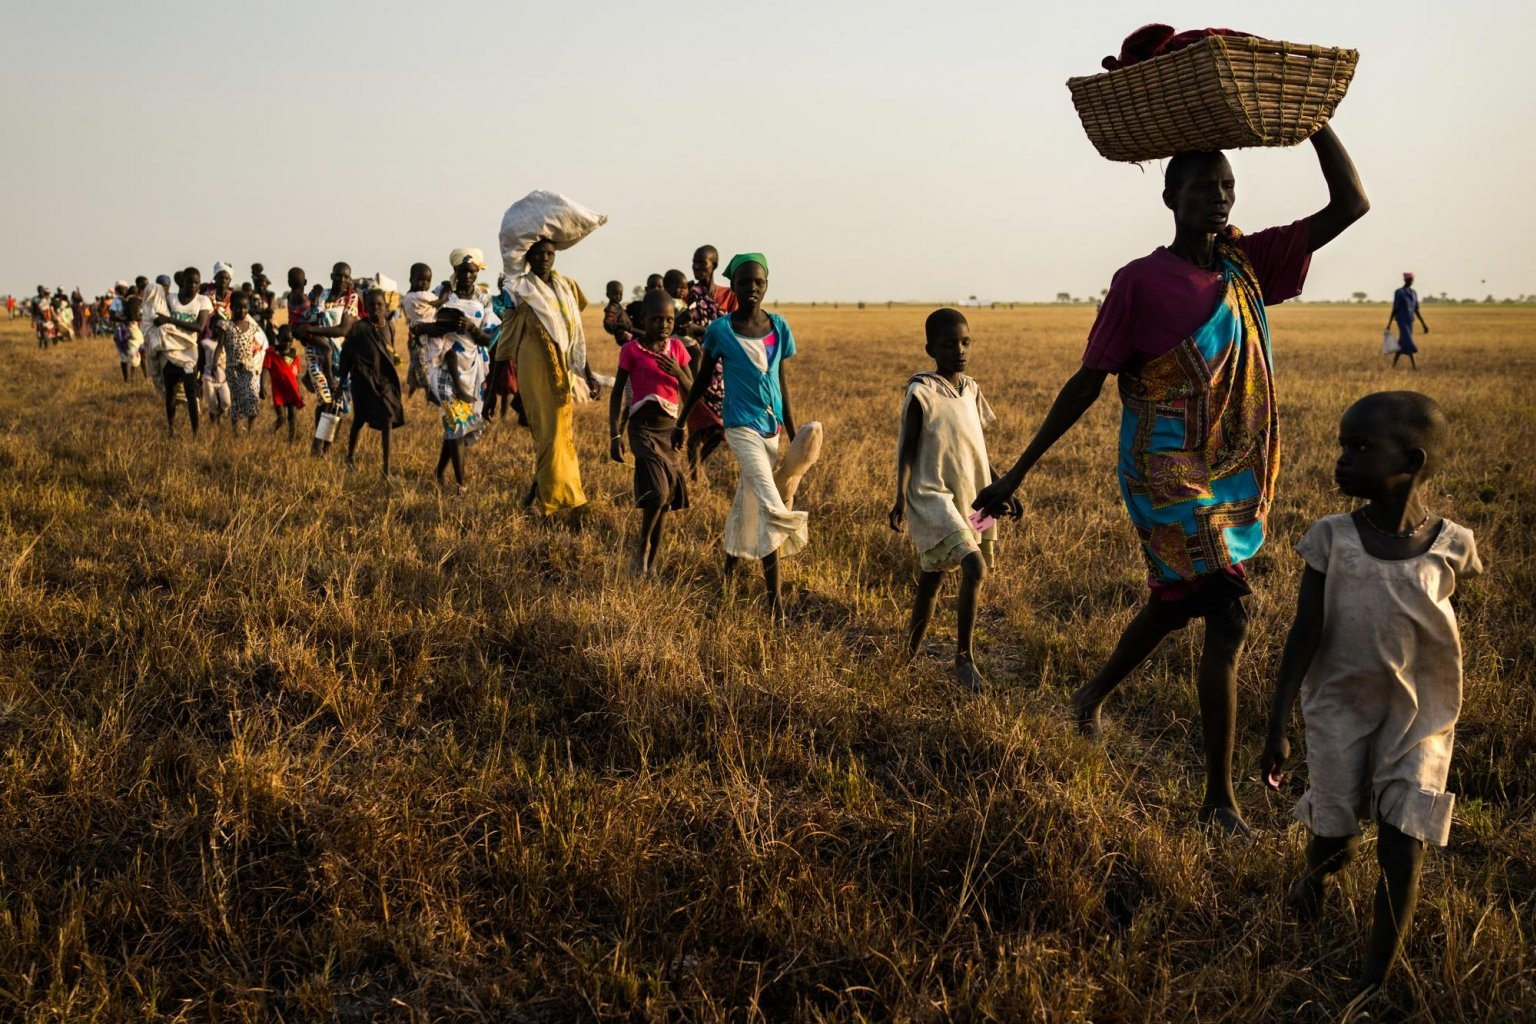 CARE - In May, Geetha Rajagopal applied for a gift to CARE for South Sudan relief efforts.